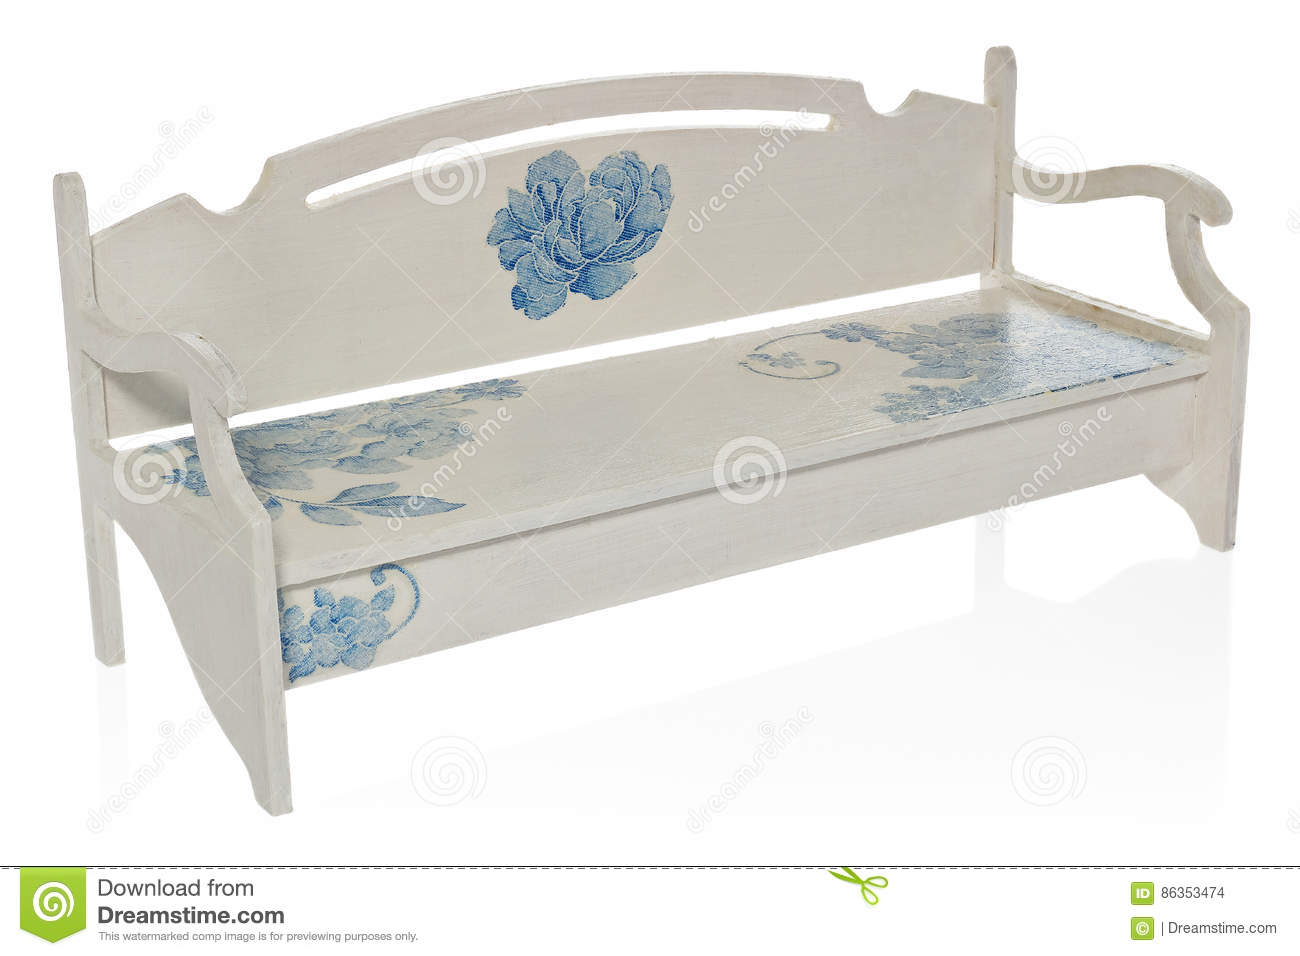 Enjoyable The Wooden Bench Painted White With A Pattern Of Blue Andrewgaddart Wooden Chair Designs For Living Room Andrewgaddartcom